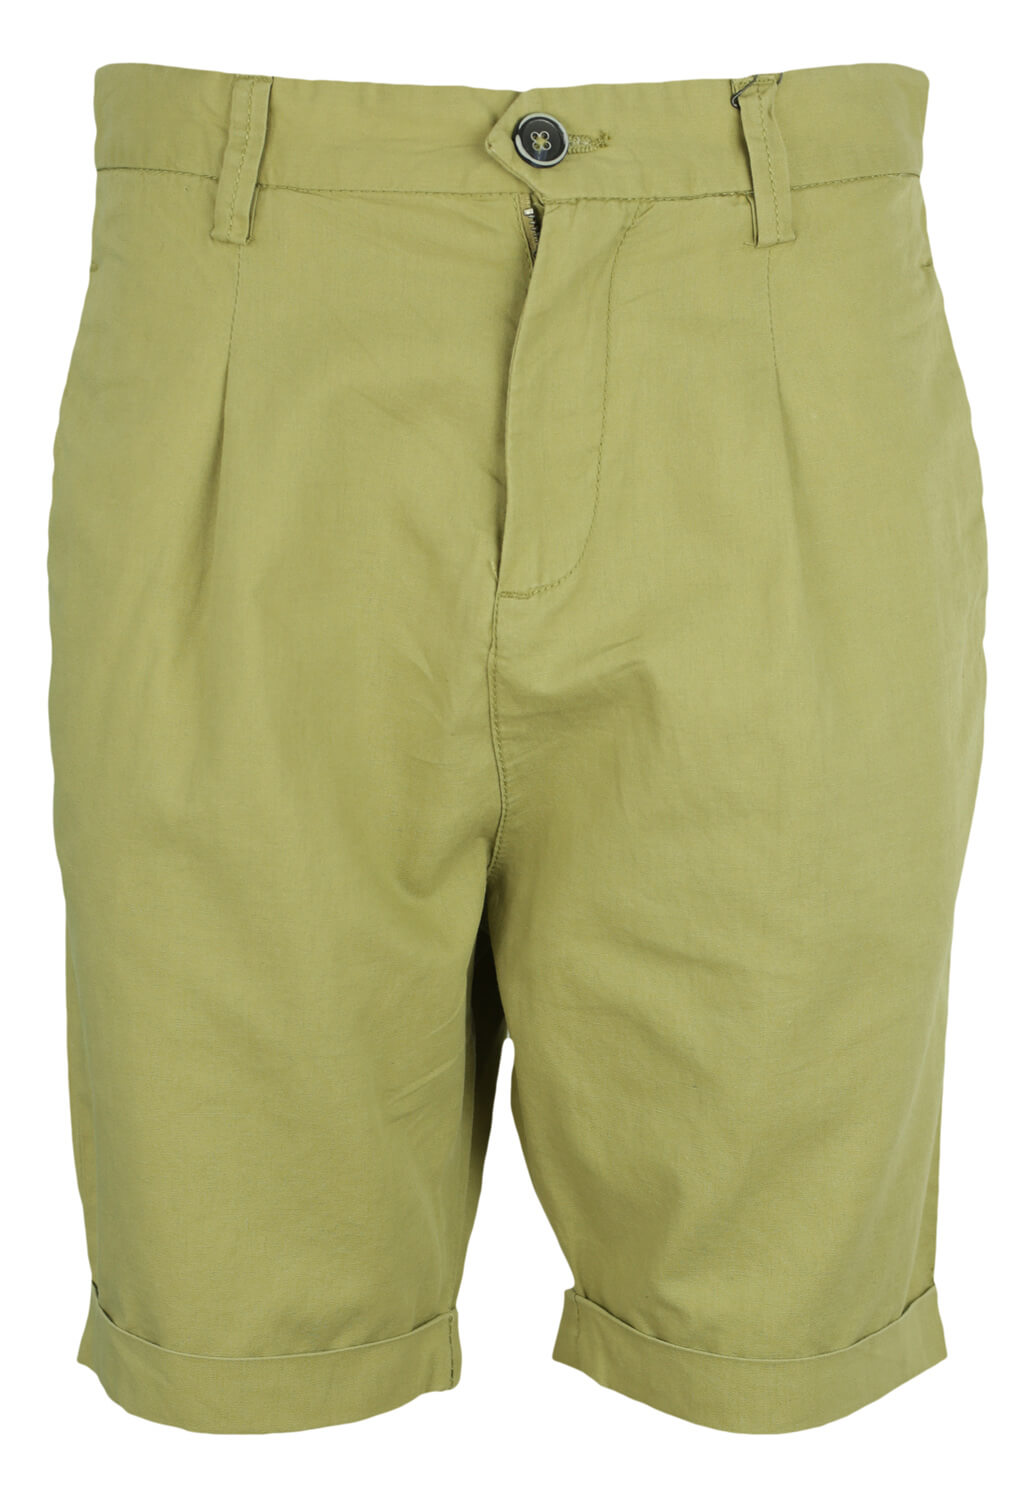 Pantaloni scurti Pull and Bear Pietro Light Beige